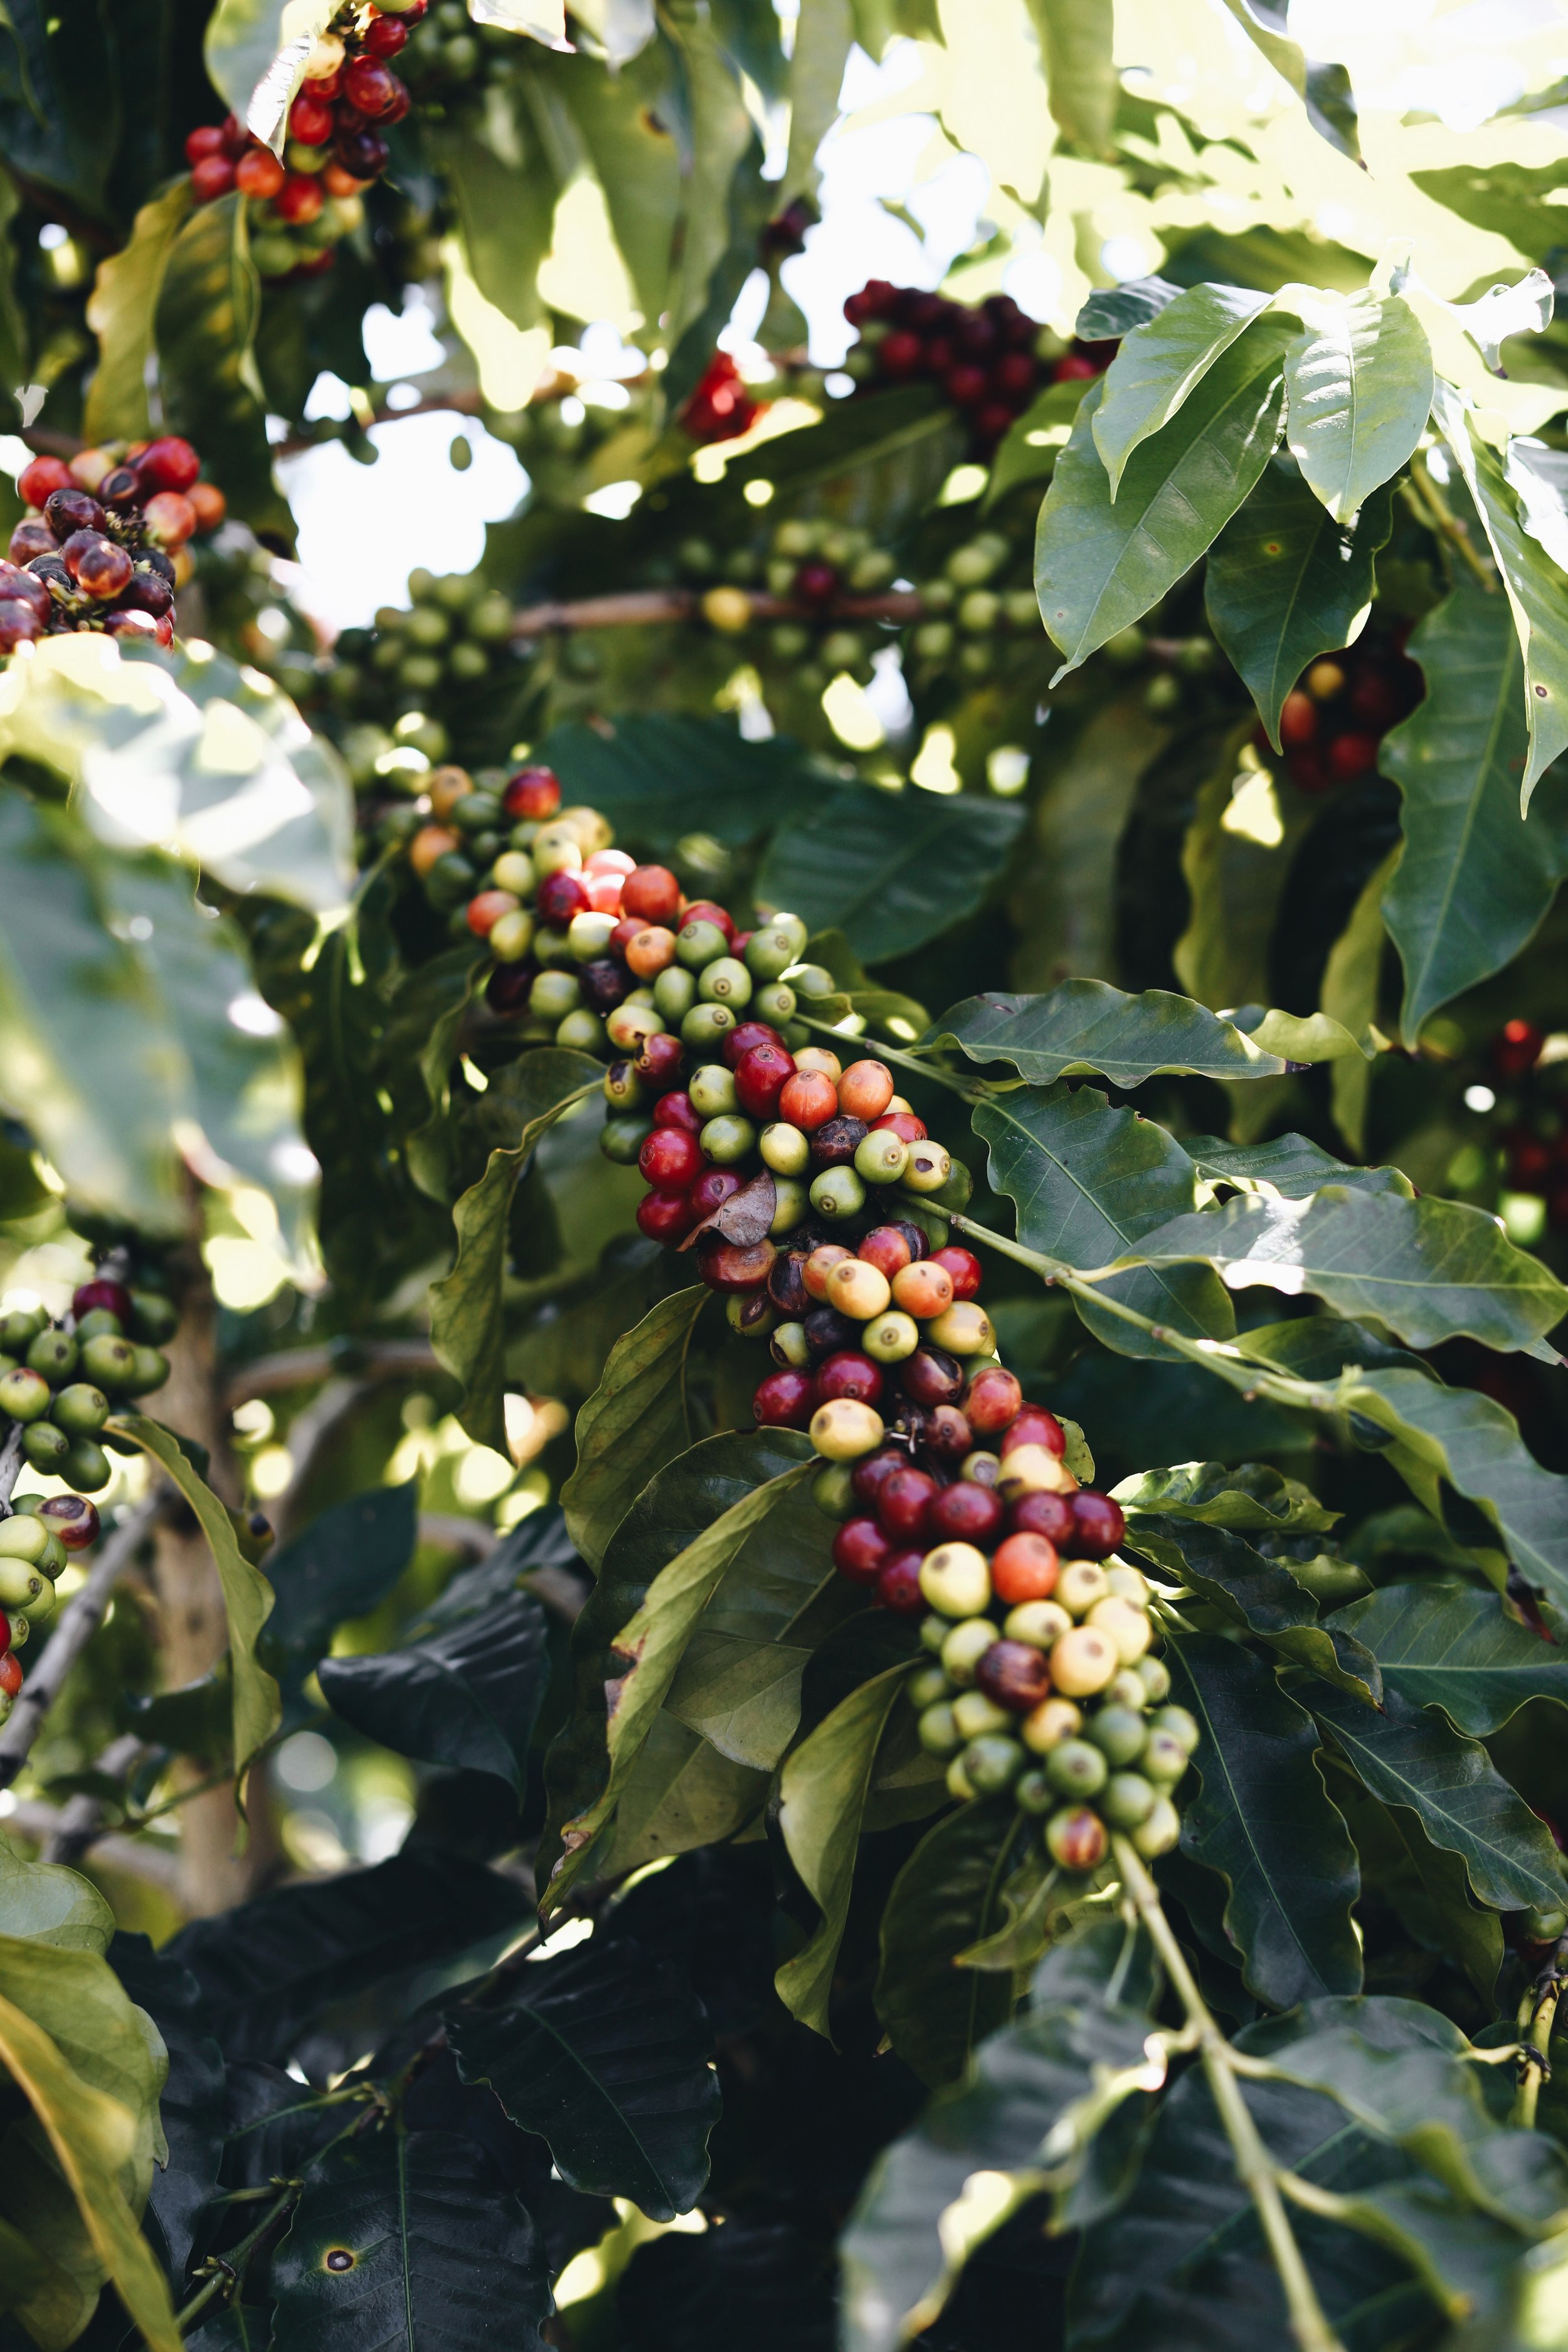 this is a coffee tree, seen at kula beans' farm in maui, hawai'i